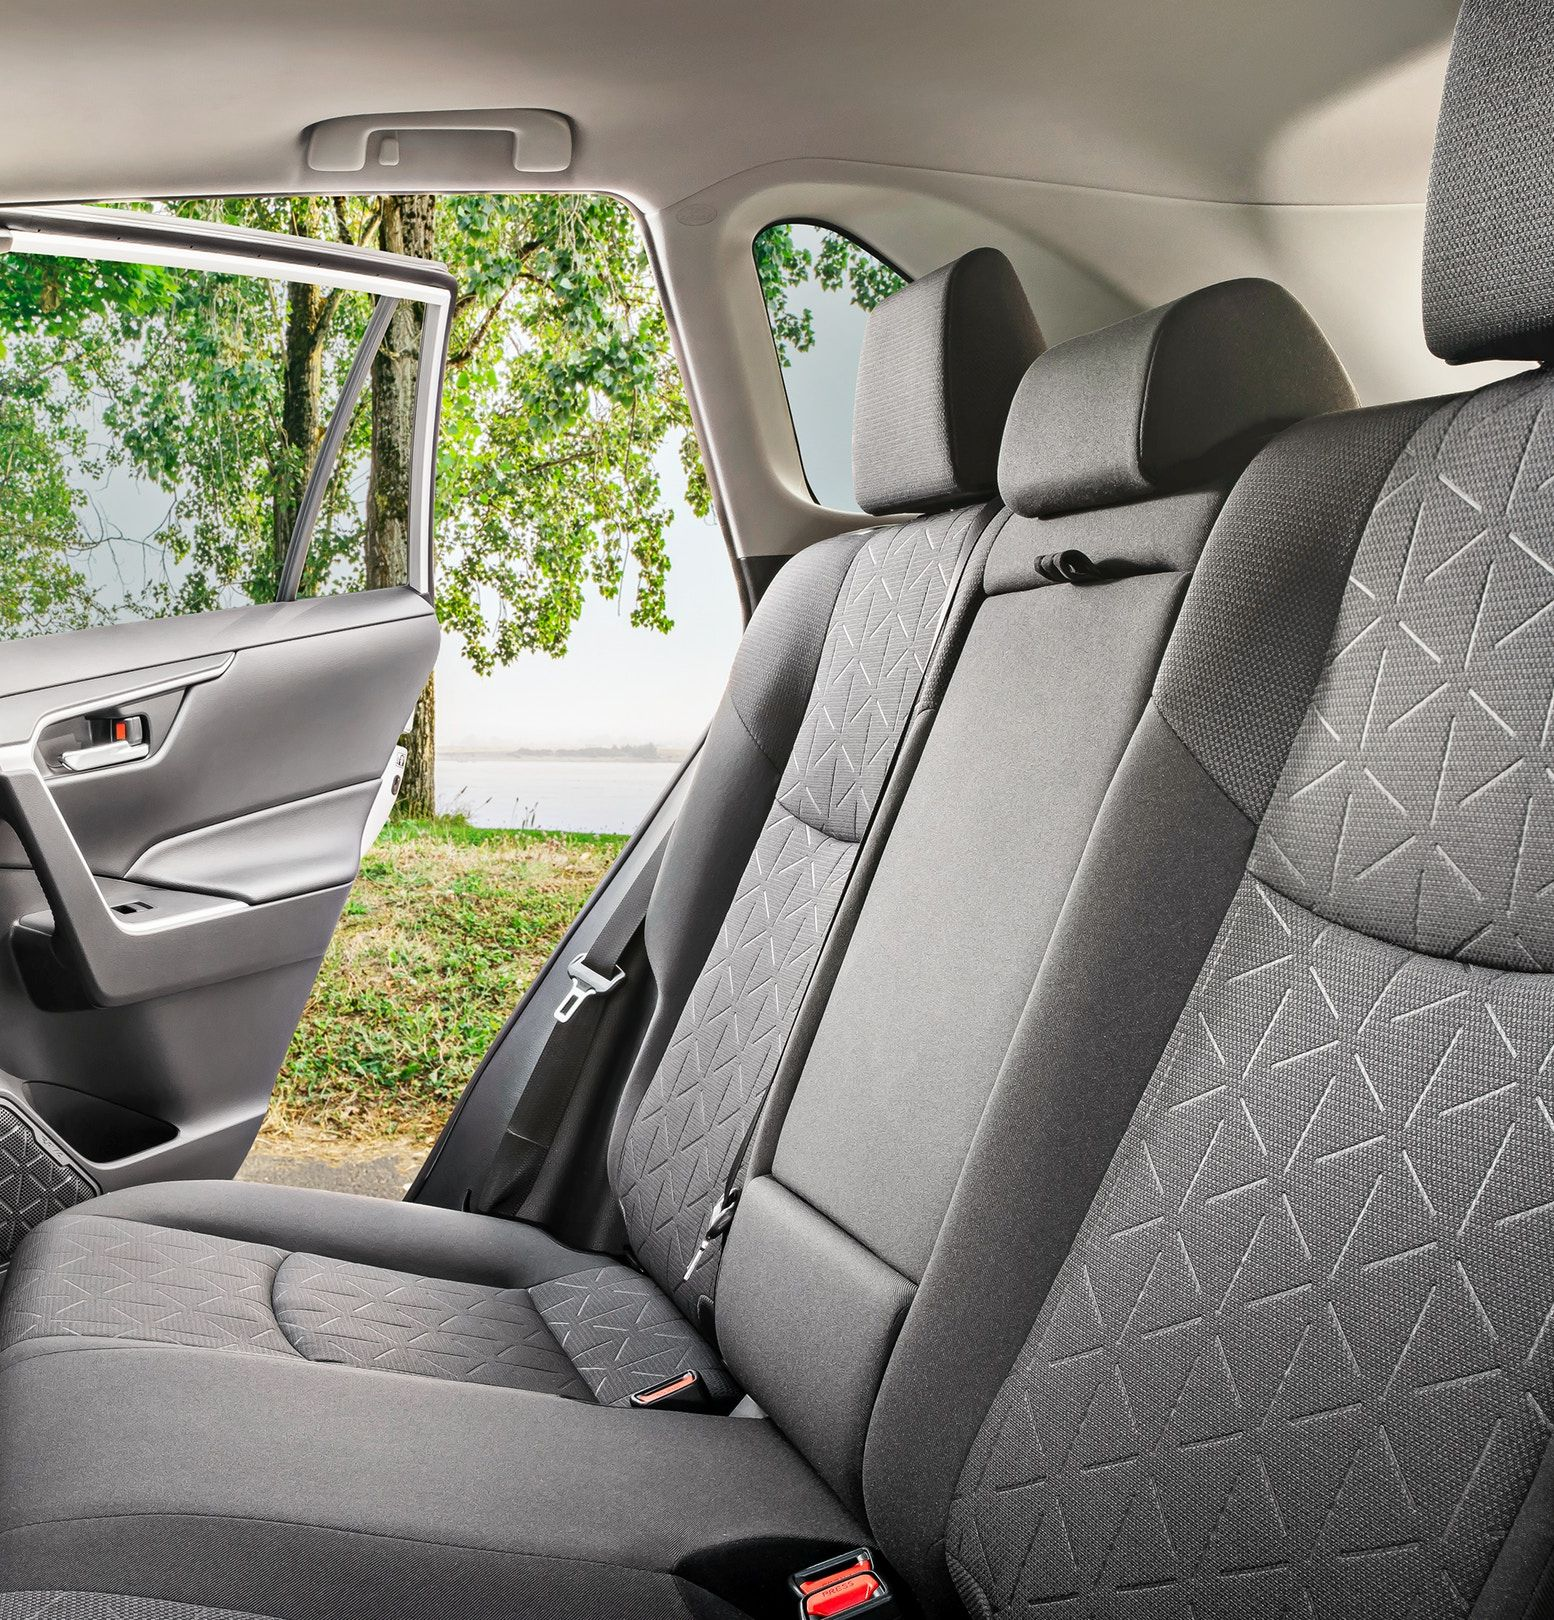 2019 Toyota RAV4 Second-Row Seating